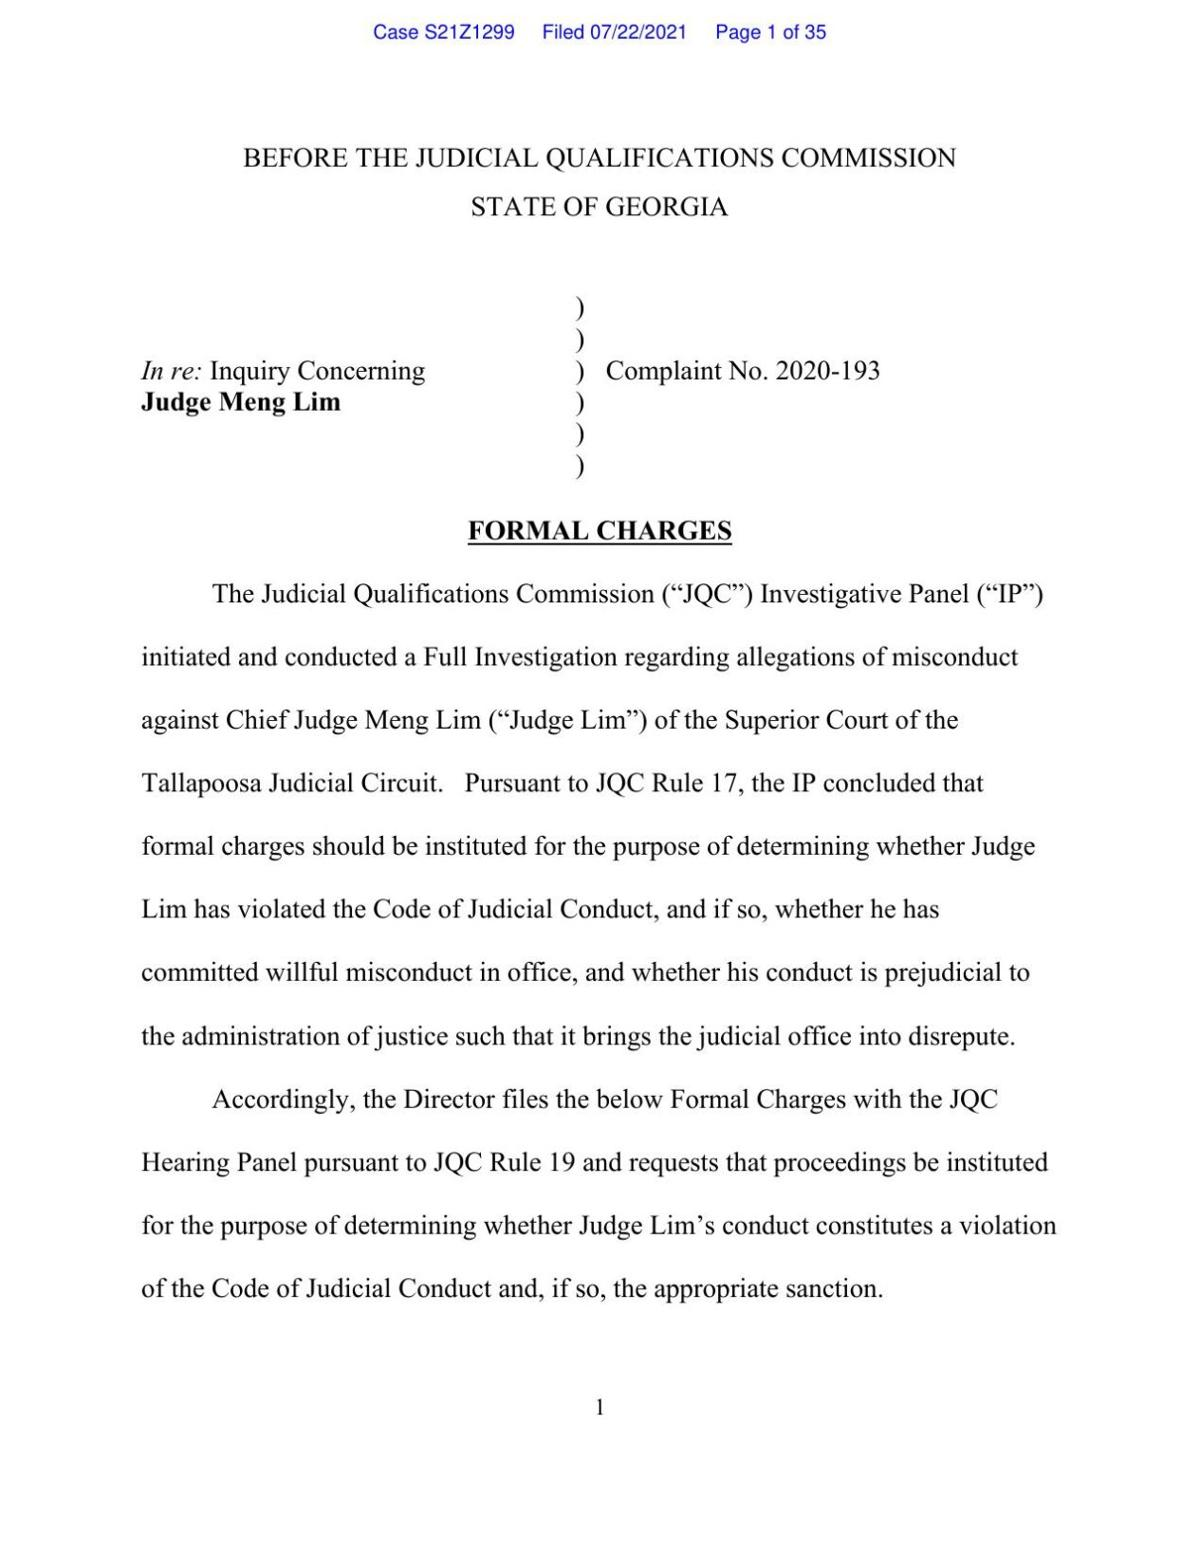 Filing of formal charges against Judge Meng Lim by the Georgia JQC